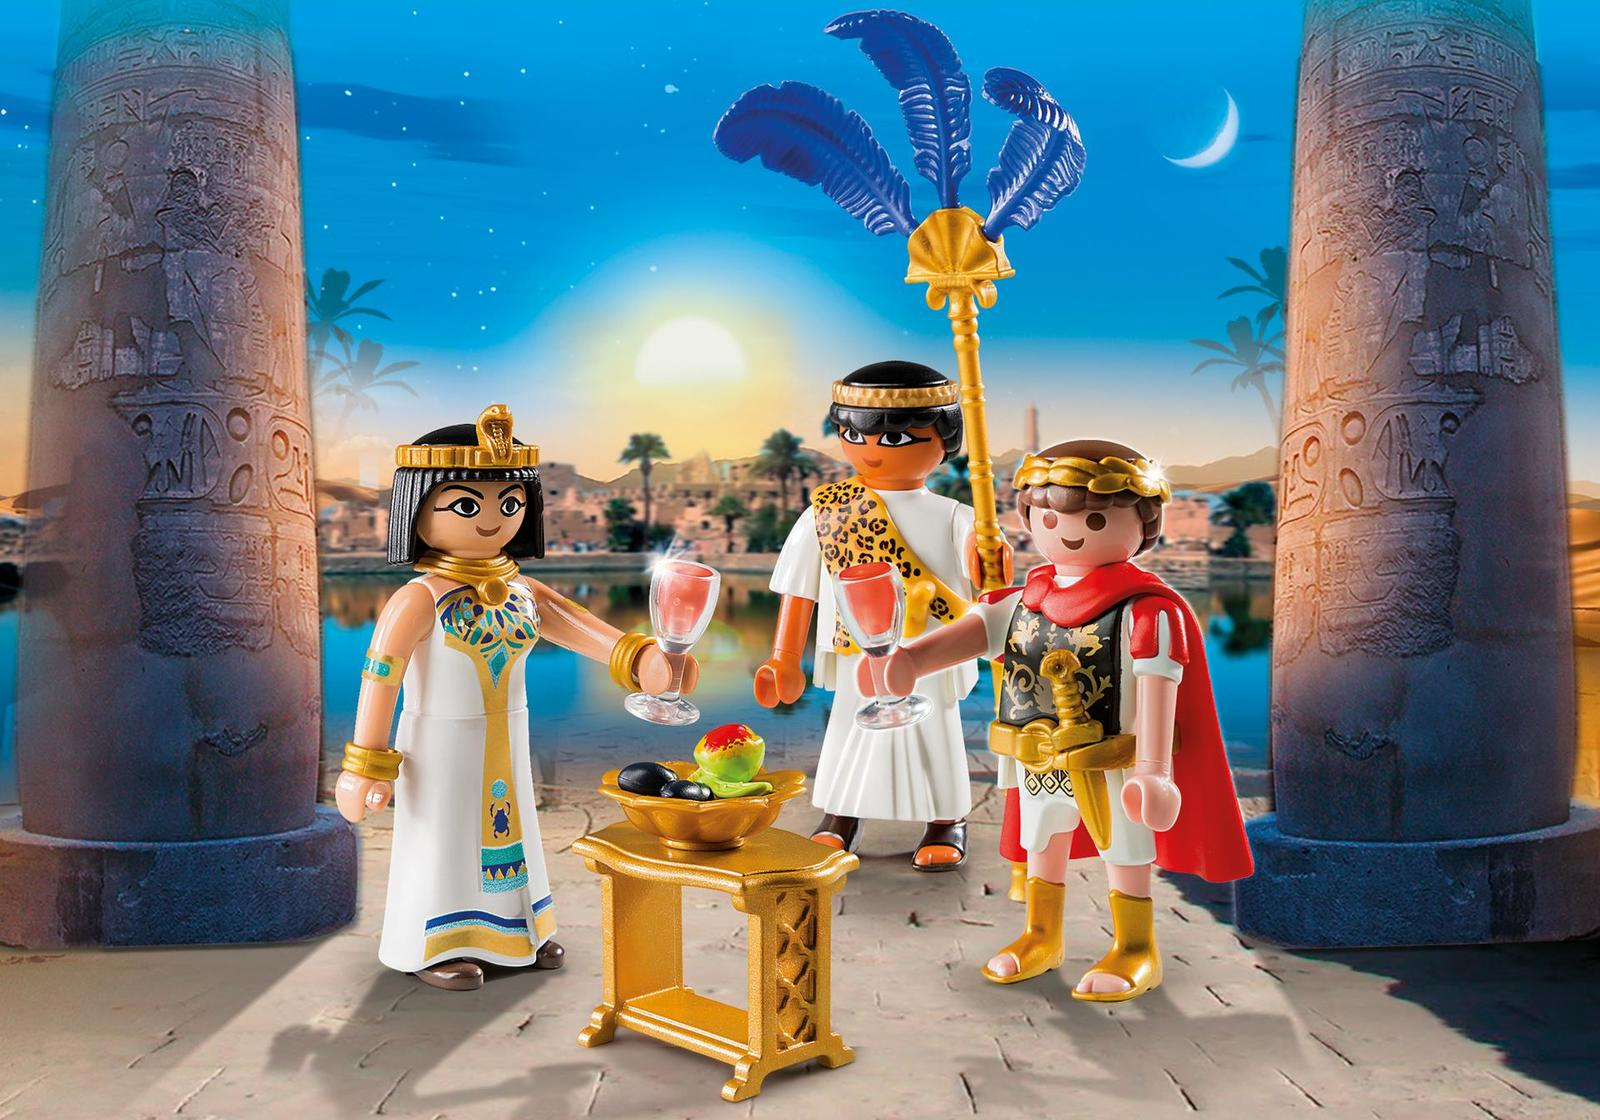 Playmobil: history - Caesar and Cleopatra image